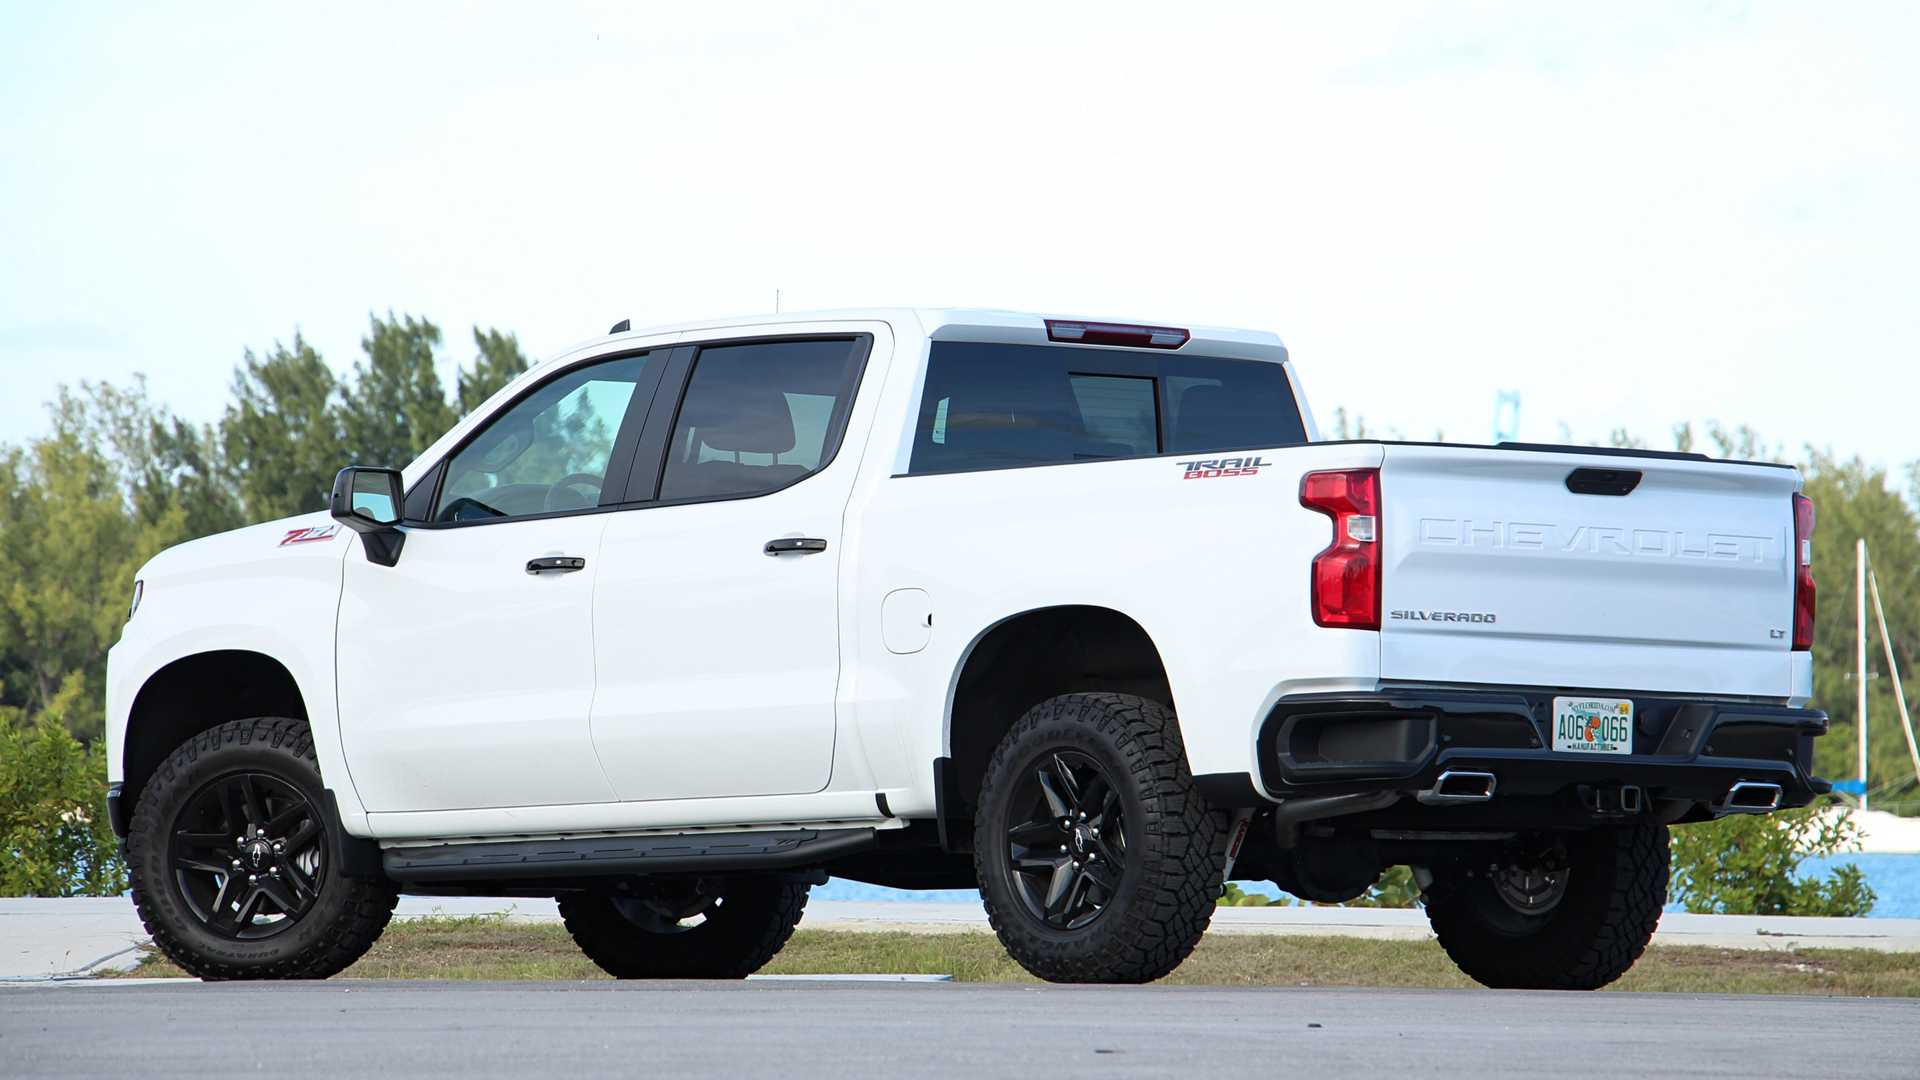 2019 Chevy Silverado Trail Boss Review: Dumb Fun